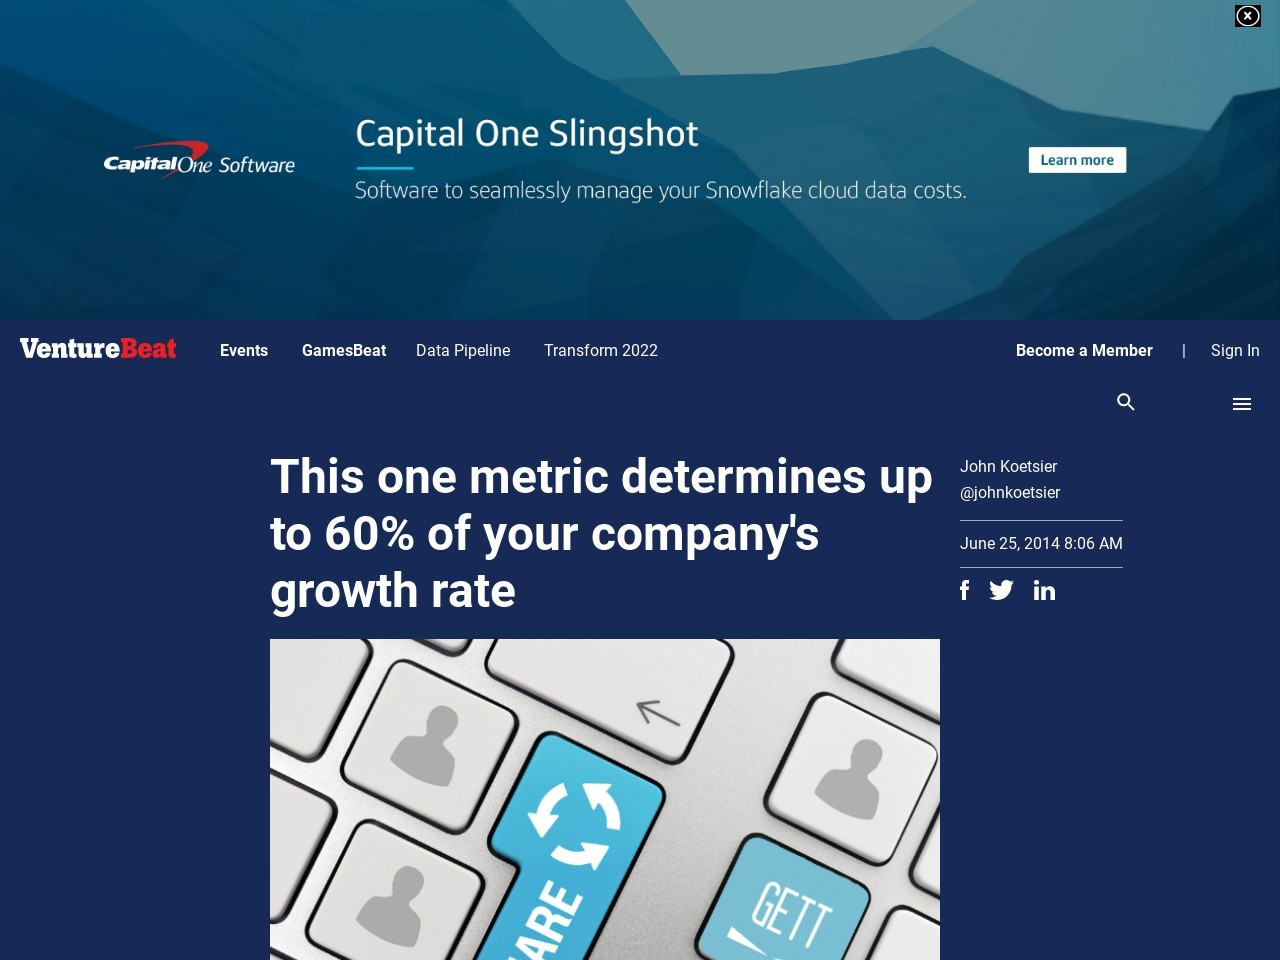 This one metric determines up to 60% of your company's growth rate